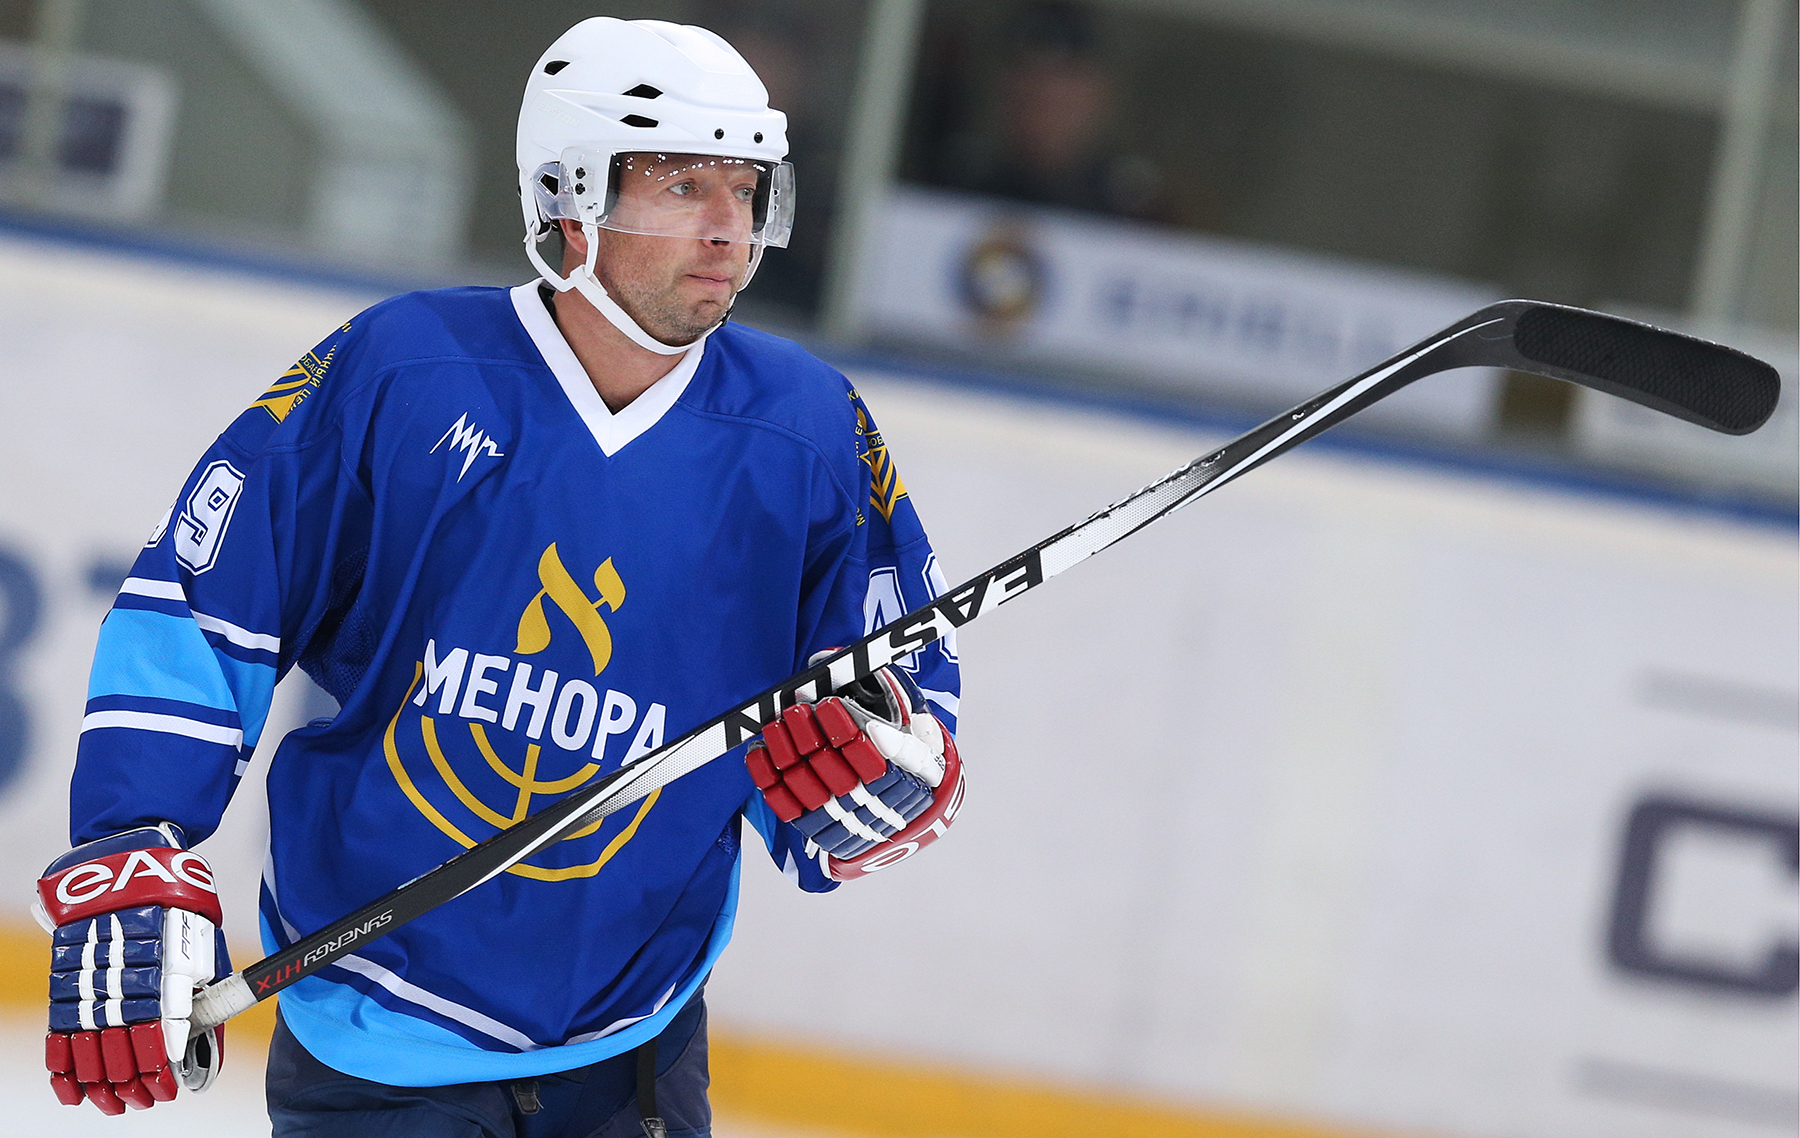 Sept. 13, 2014 - Russian Federation - ITAR-TASS: MOSCOW, RUSSIA. SEPTEMBER 11, 2014. Alltech Group president Dmitry Bosov competets in an ice hockey friendly between Legendy Khokkeya, a Russian All-Star Team, and Menora, a Moscow Jewish community team, at Luzhniki Ice Arena. (Credit Image: © Artyom Korotayev/ITAR-TASS/ZUMA Wire)